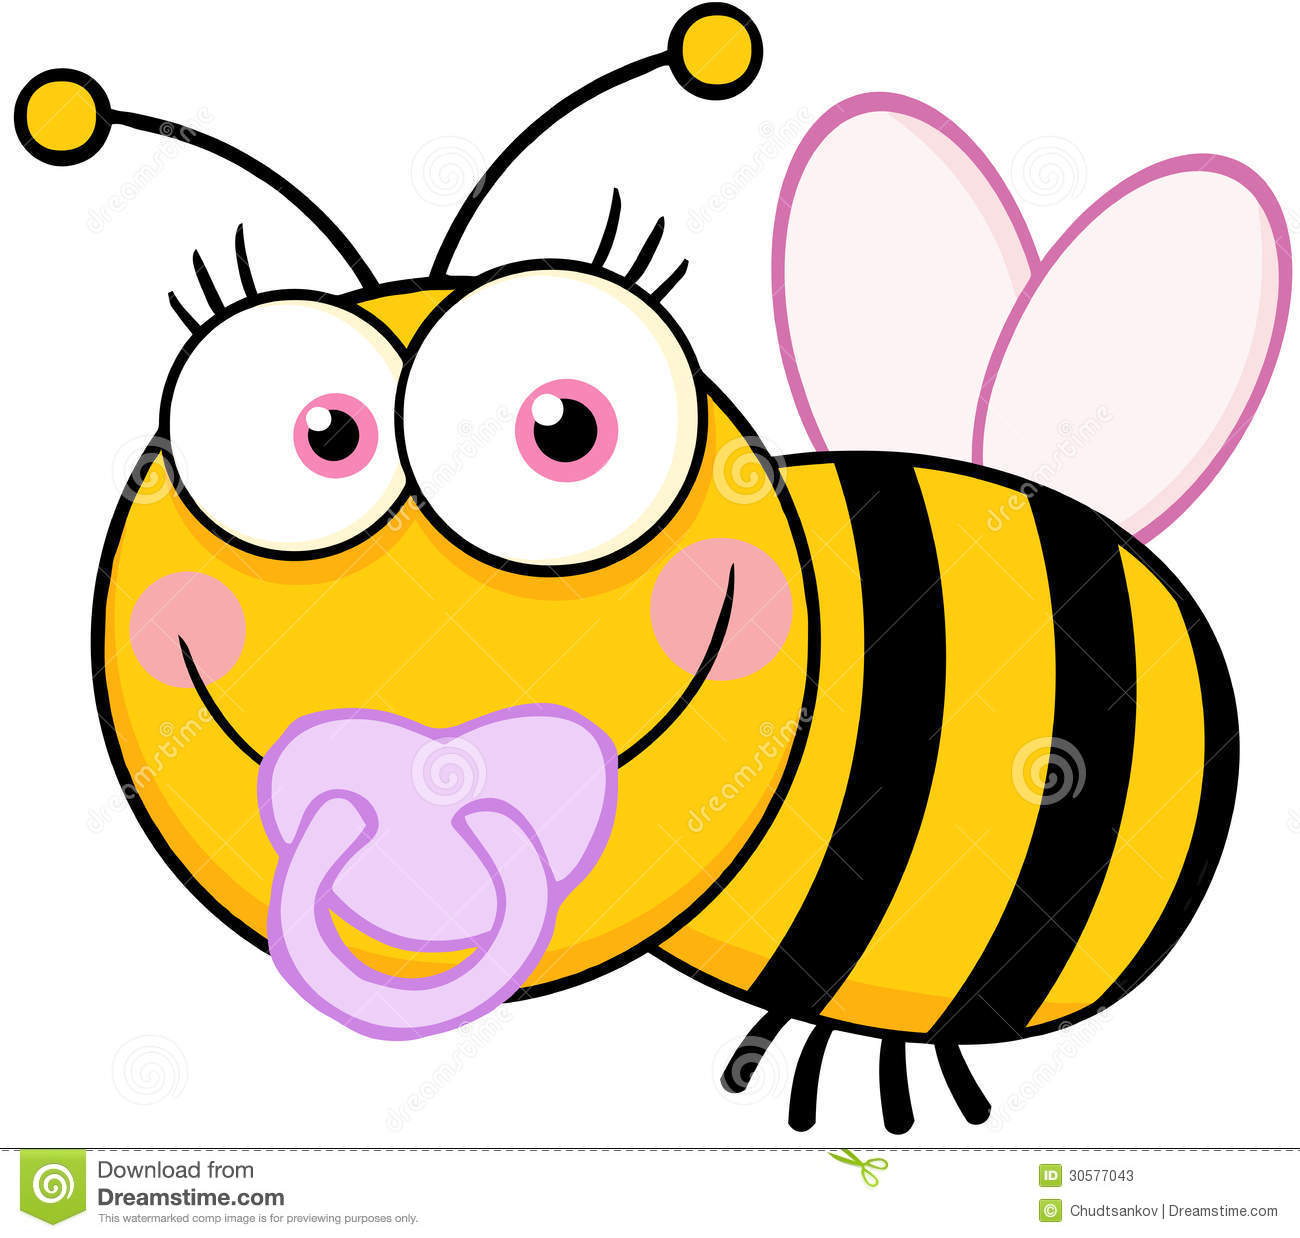 Cute Cartoon Bumble Bee Clipart Amp Stock Pictures